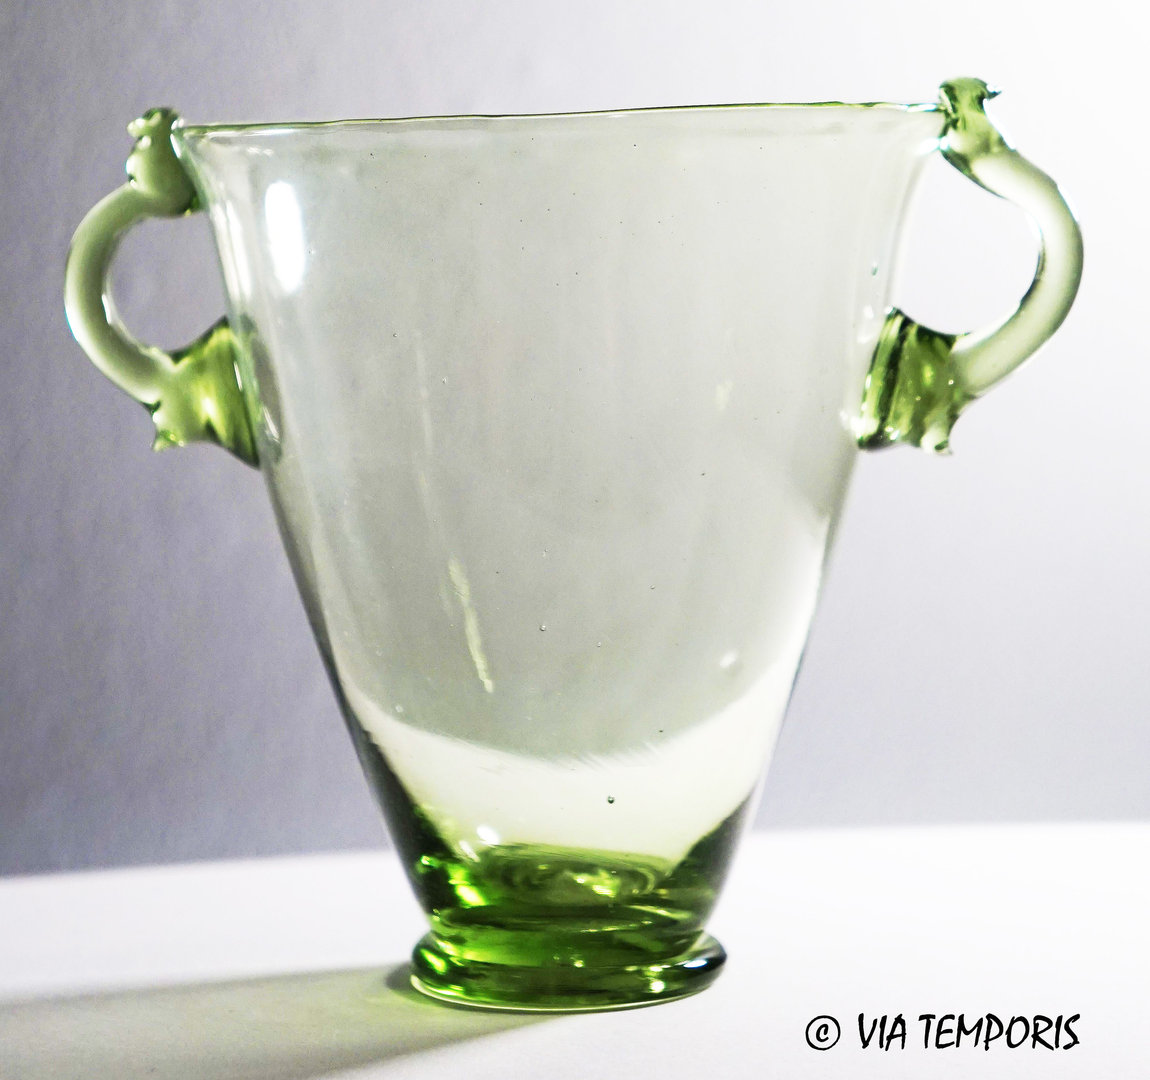 GALLO-ROMAN GLASSWARE - SKYPHOS (green)